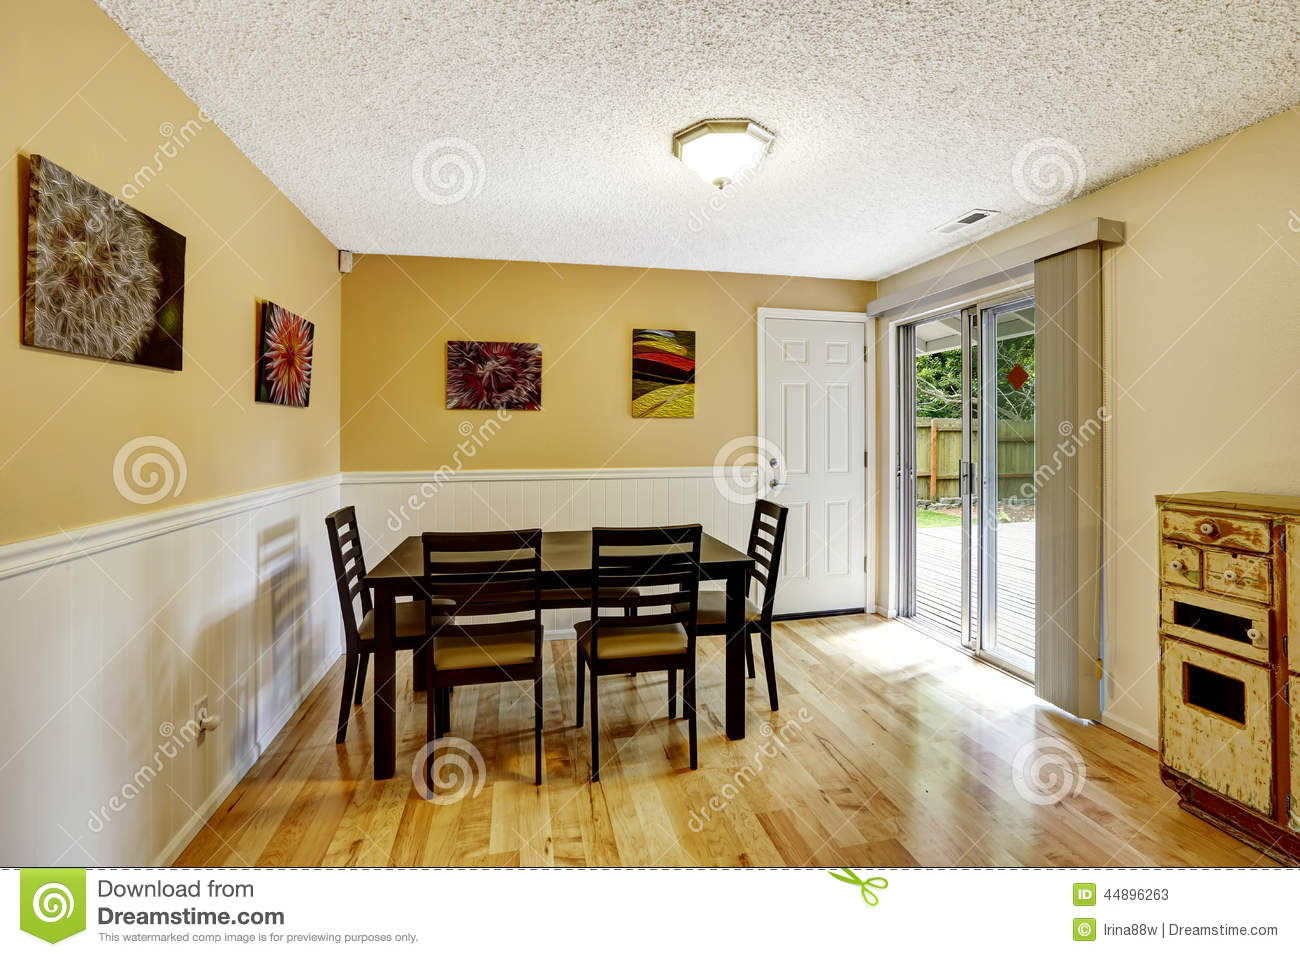 Dining Room With Exit To Backyard Patio Area Stock Photo  Image 44896263